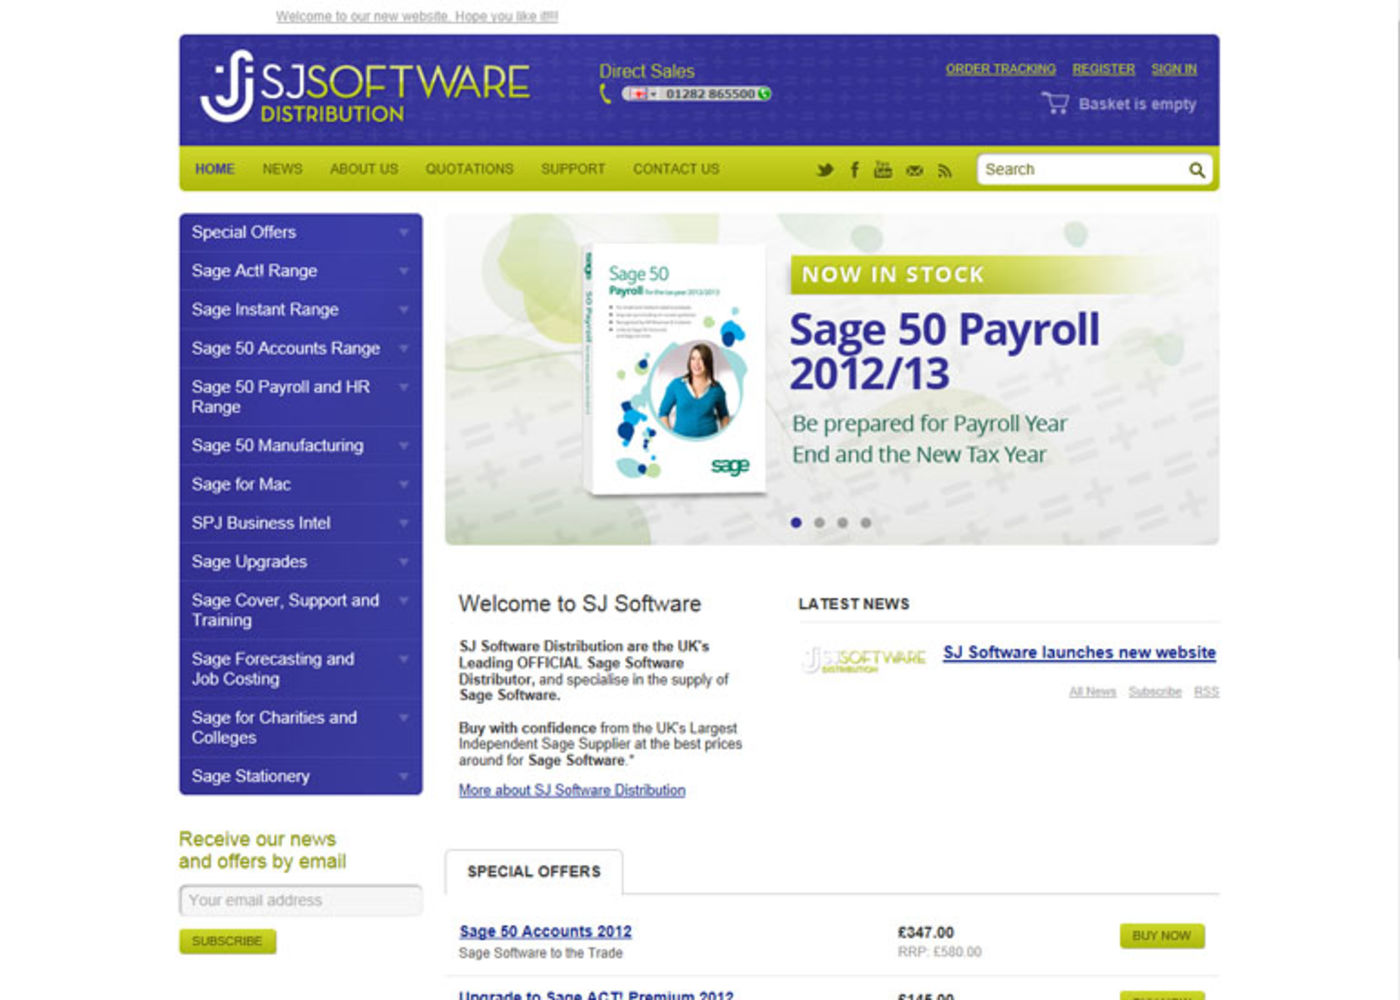 SJ Software Distribution 2012 Homepage header